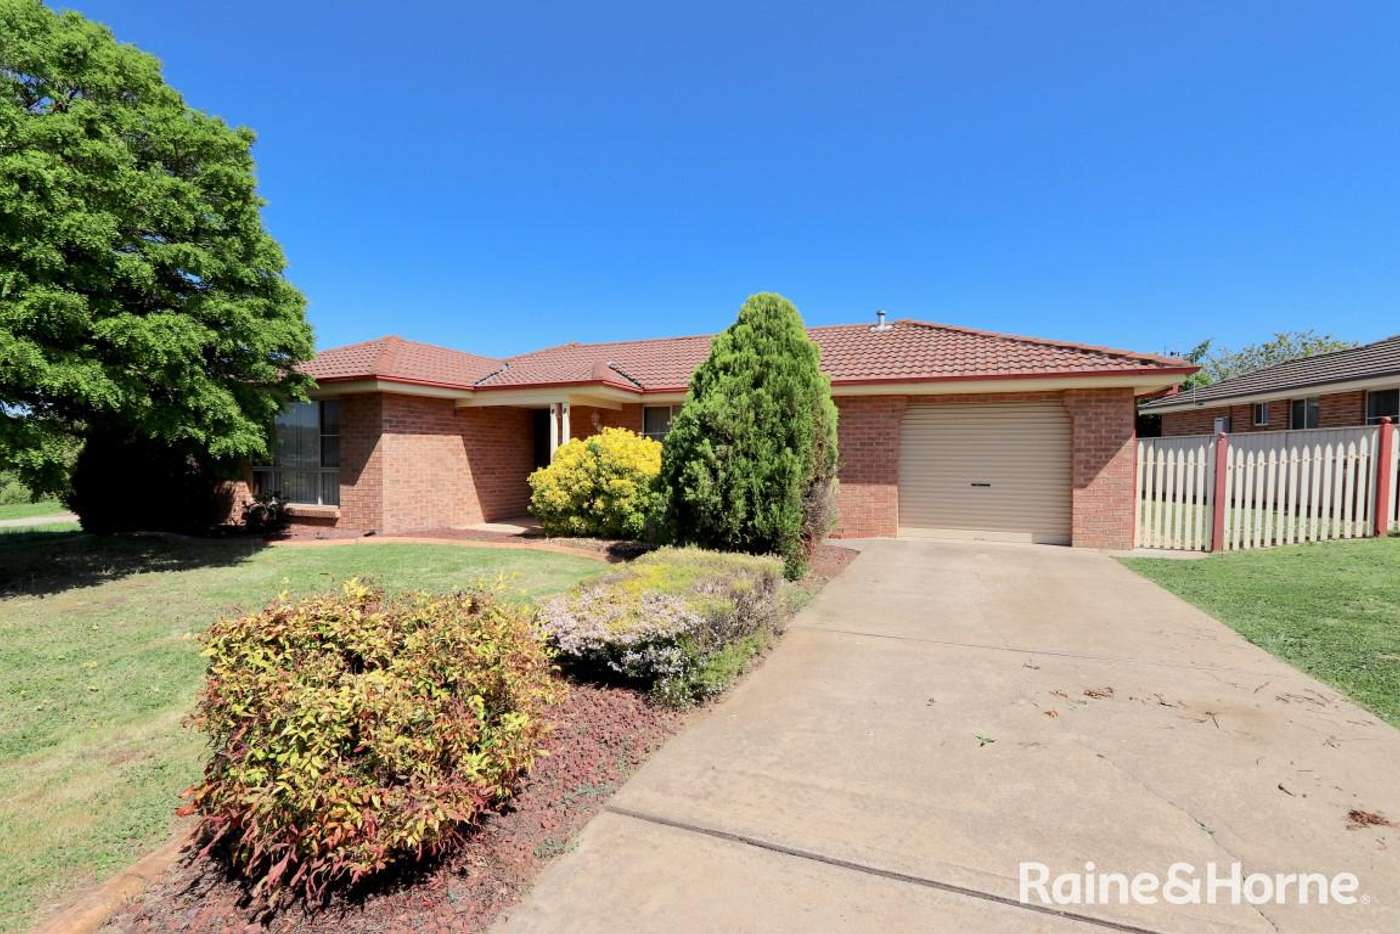 Main view of Homely house listing, 47 Freestone Way, Bathurst NSW 2795